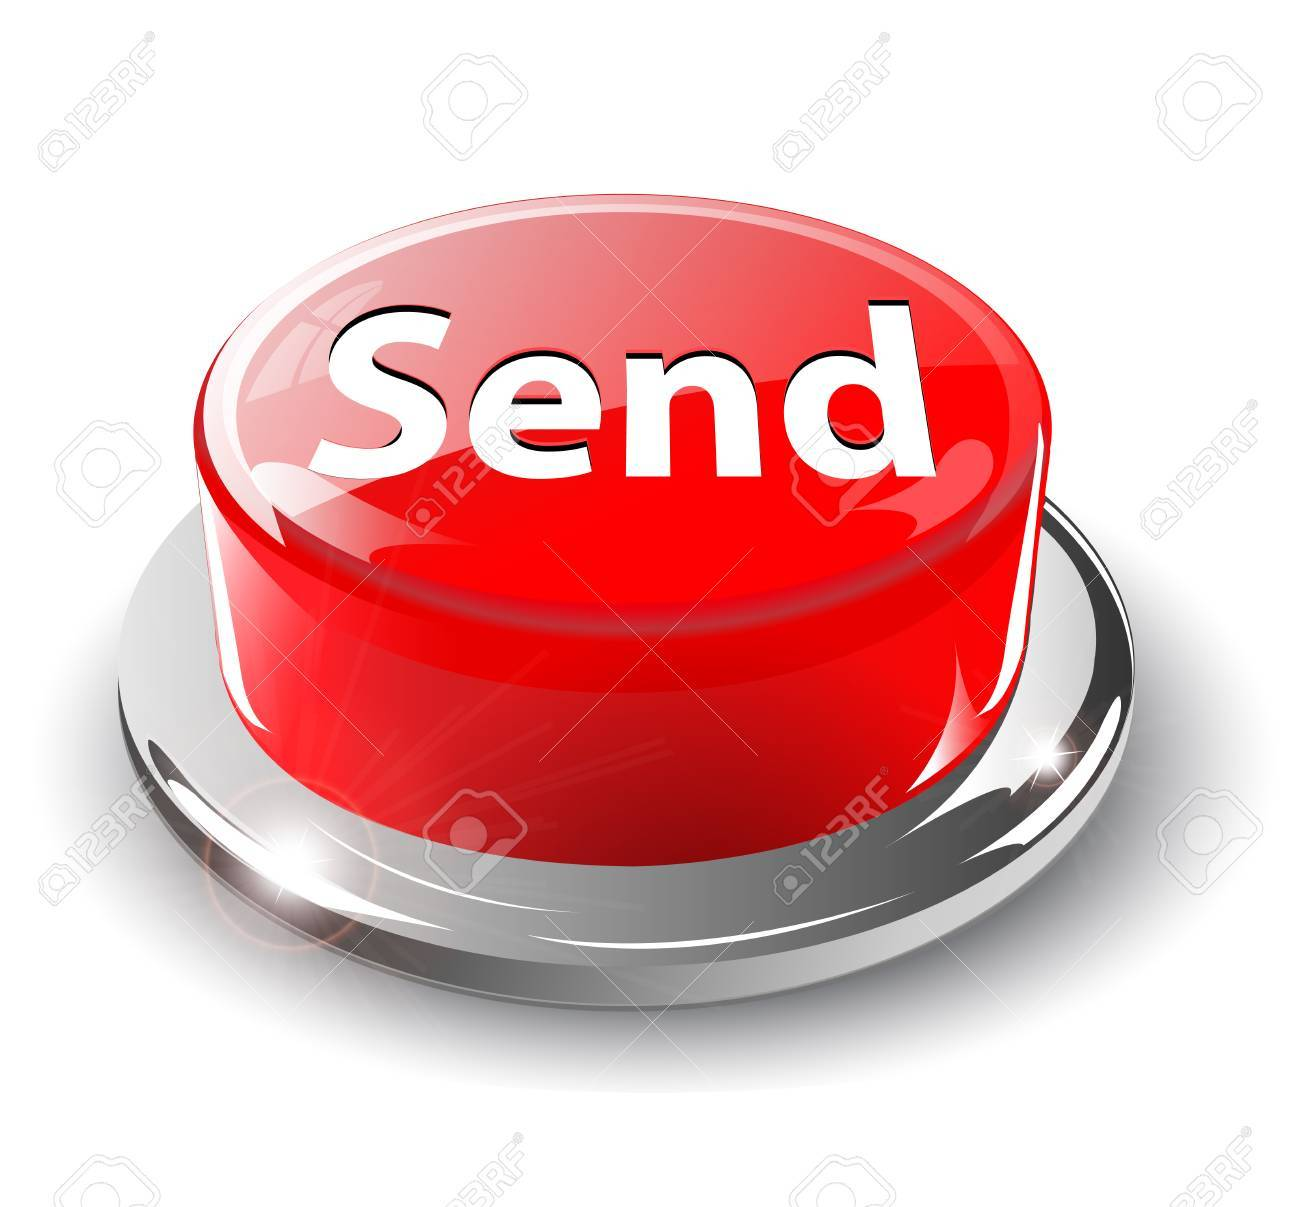 Send, mail button, 3d red glossy metallic Stock Vector - 6596409